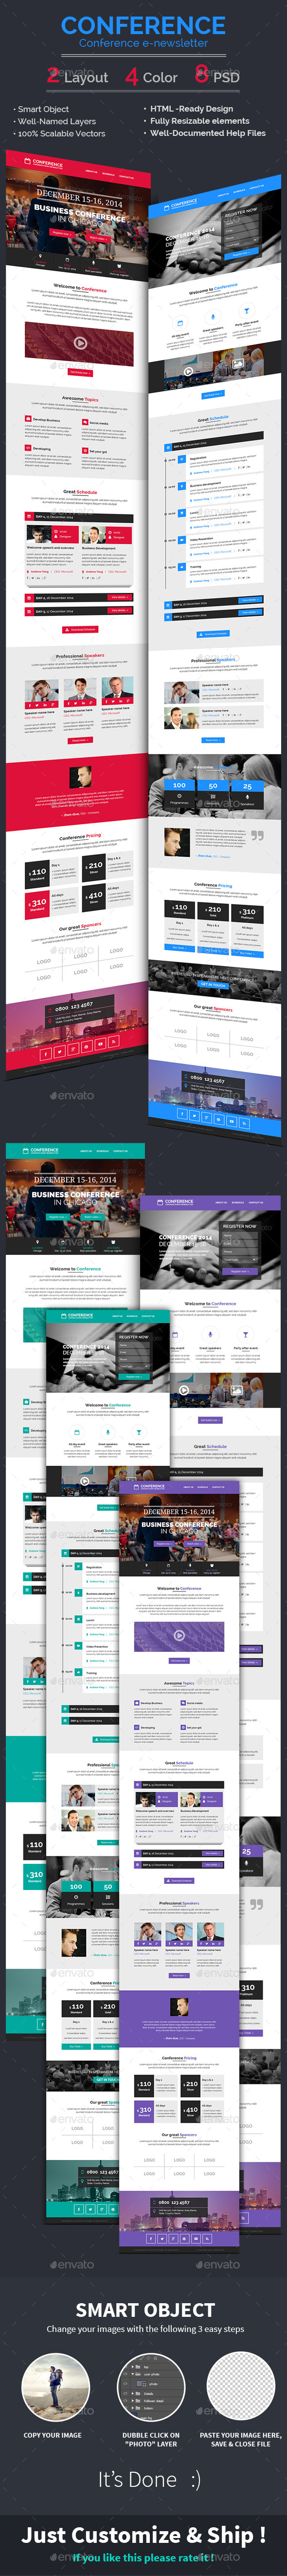 Conference / Event E-newsletter PSD Template - E-newsletters Web Elements